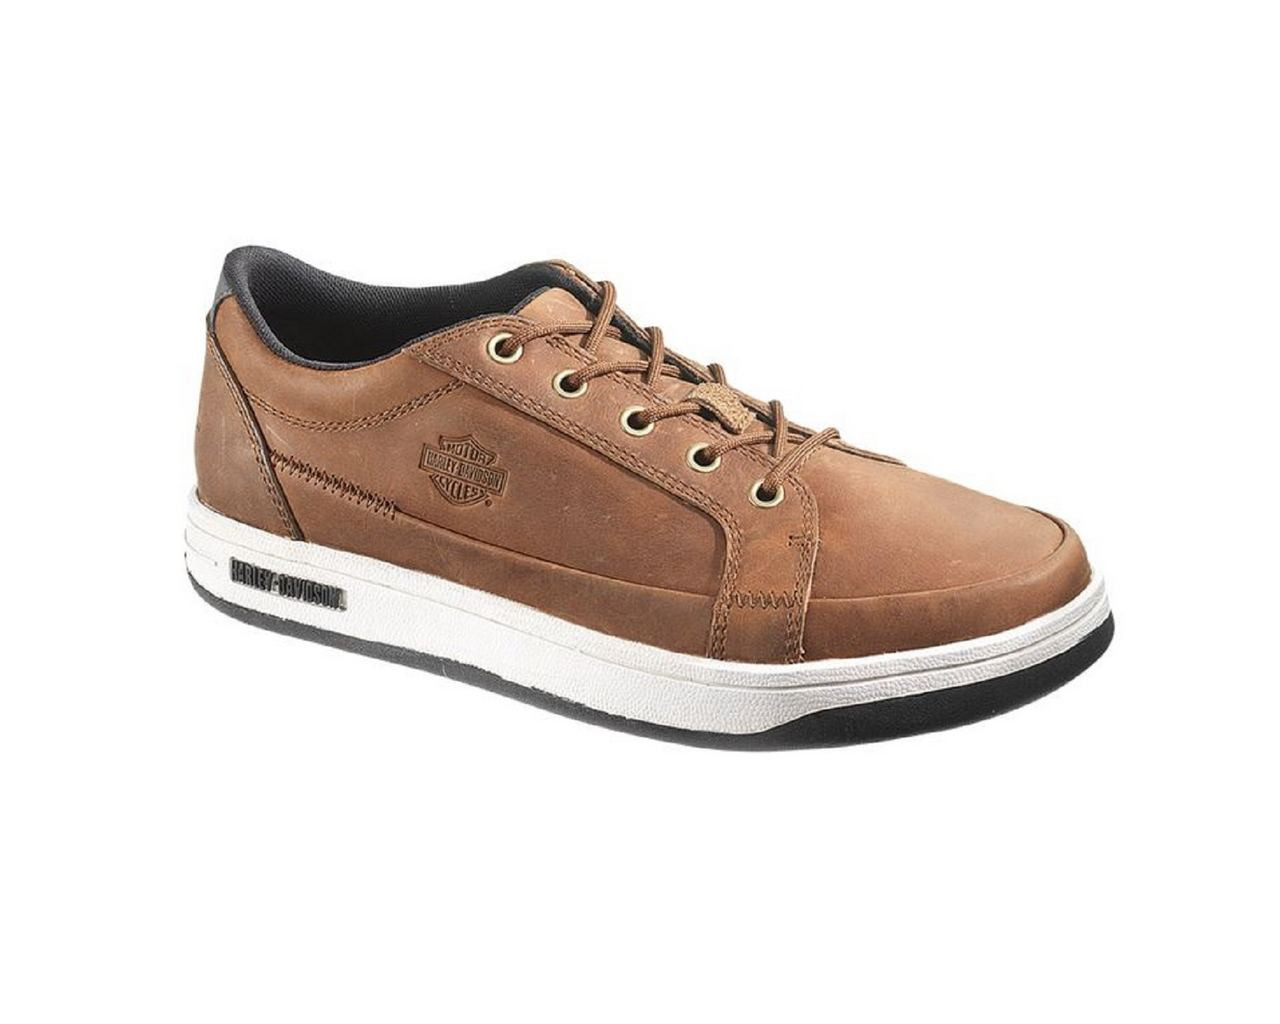 664486d21e38 Harley-Davidson® Men s Jez Skate Shoes. Black or Brown. D93133 D93134 -  Wisconsin Harley-Davidson